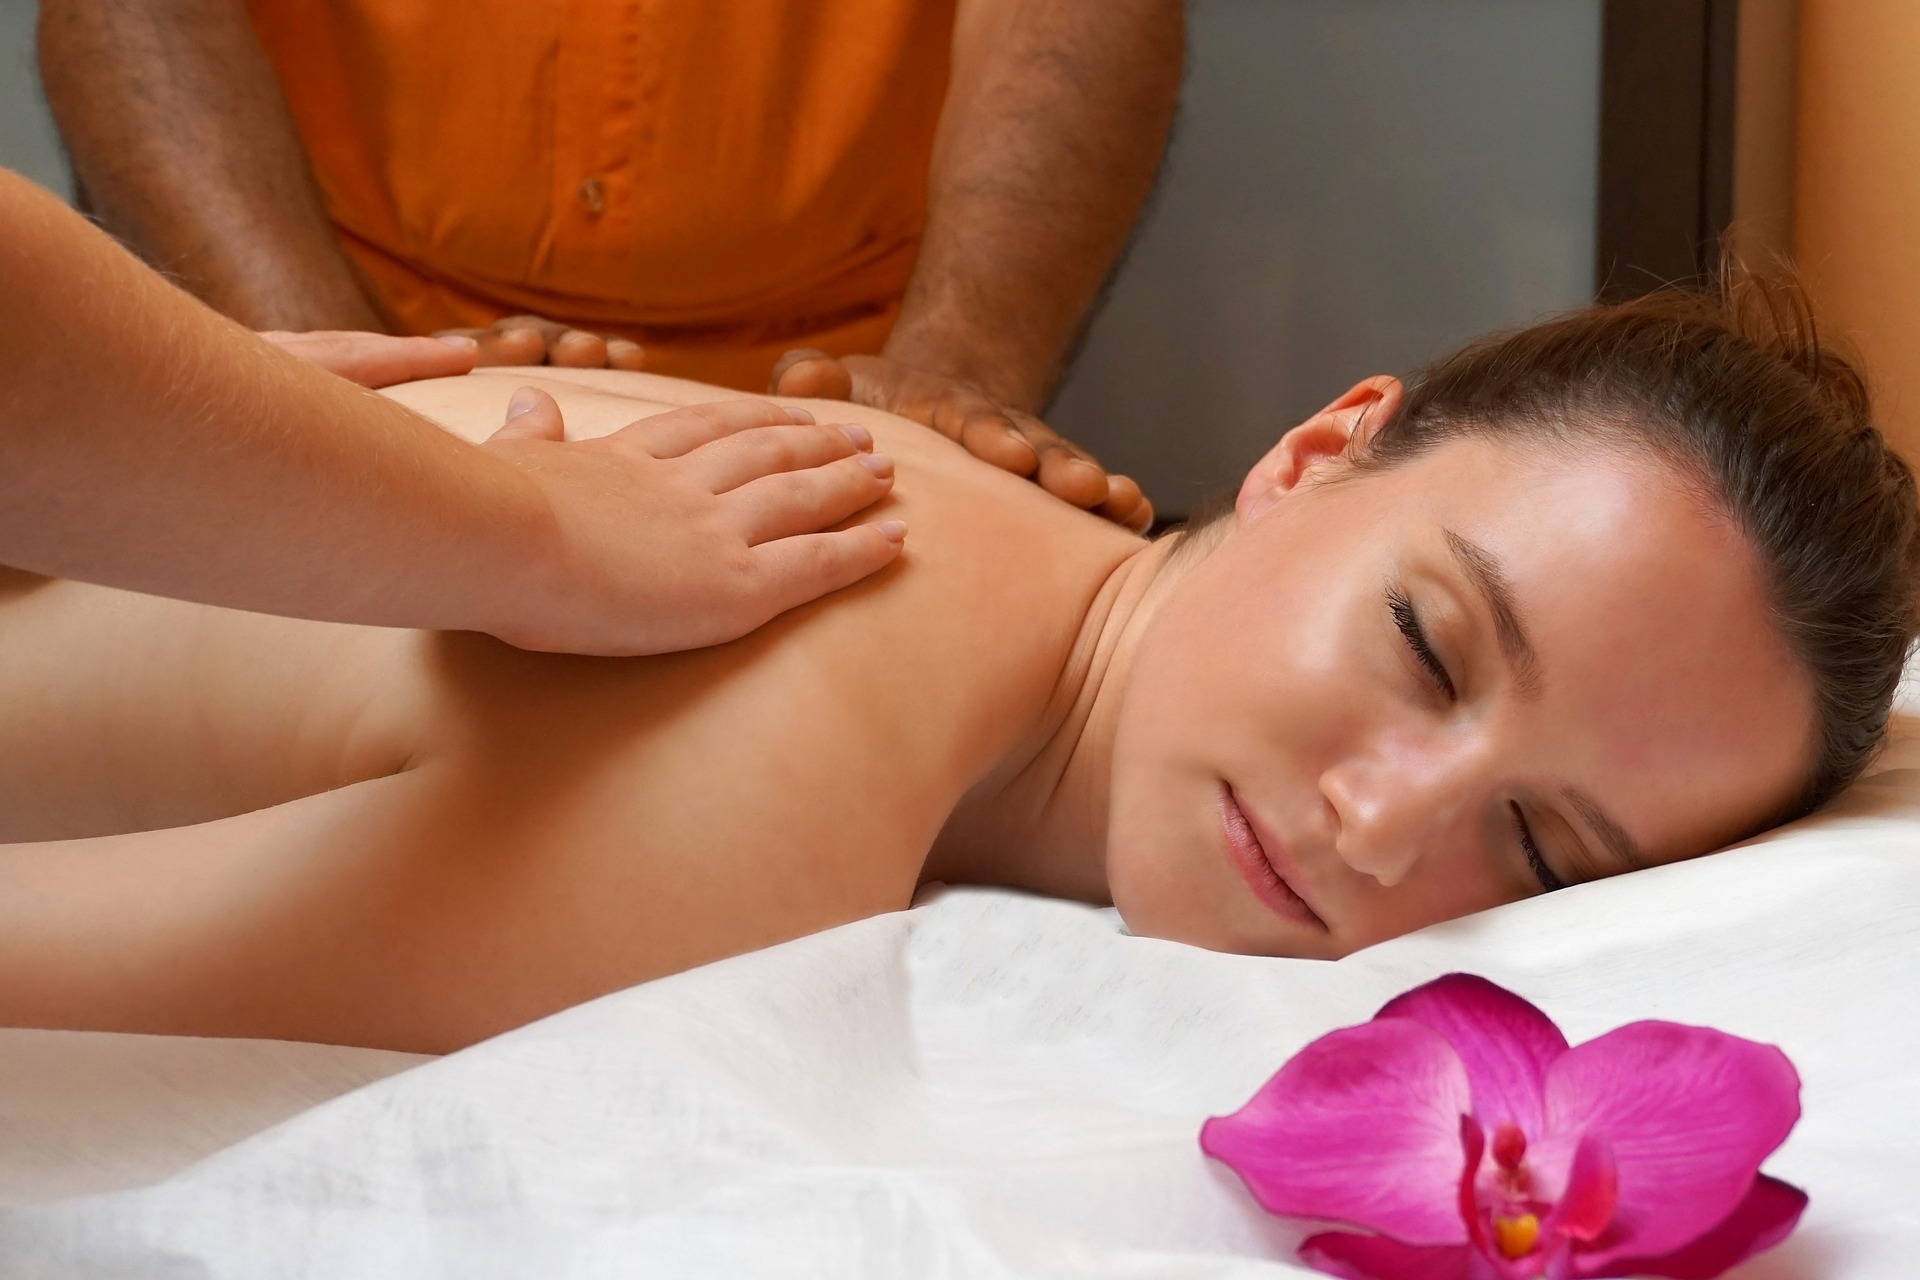 Massage_Marrakech_EVJF_CC0.jpg?1544810067